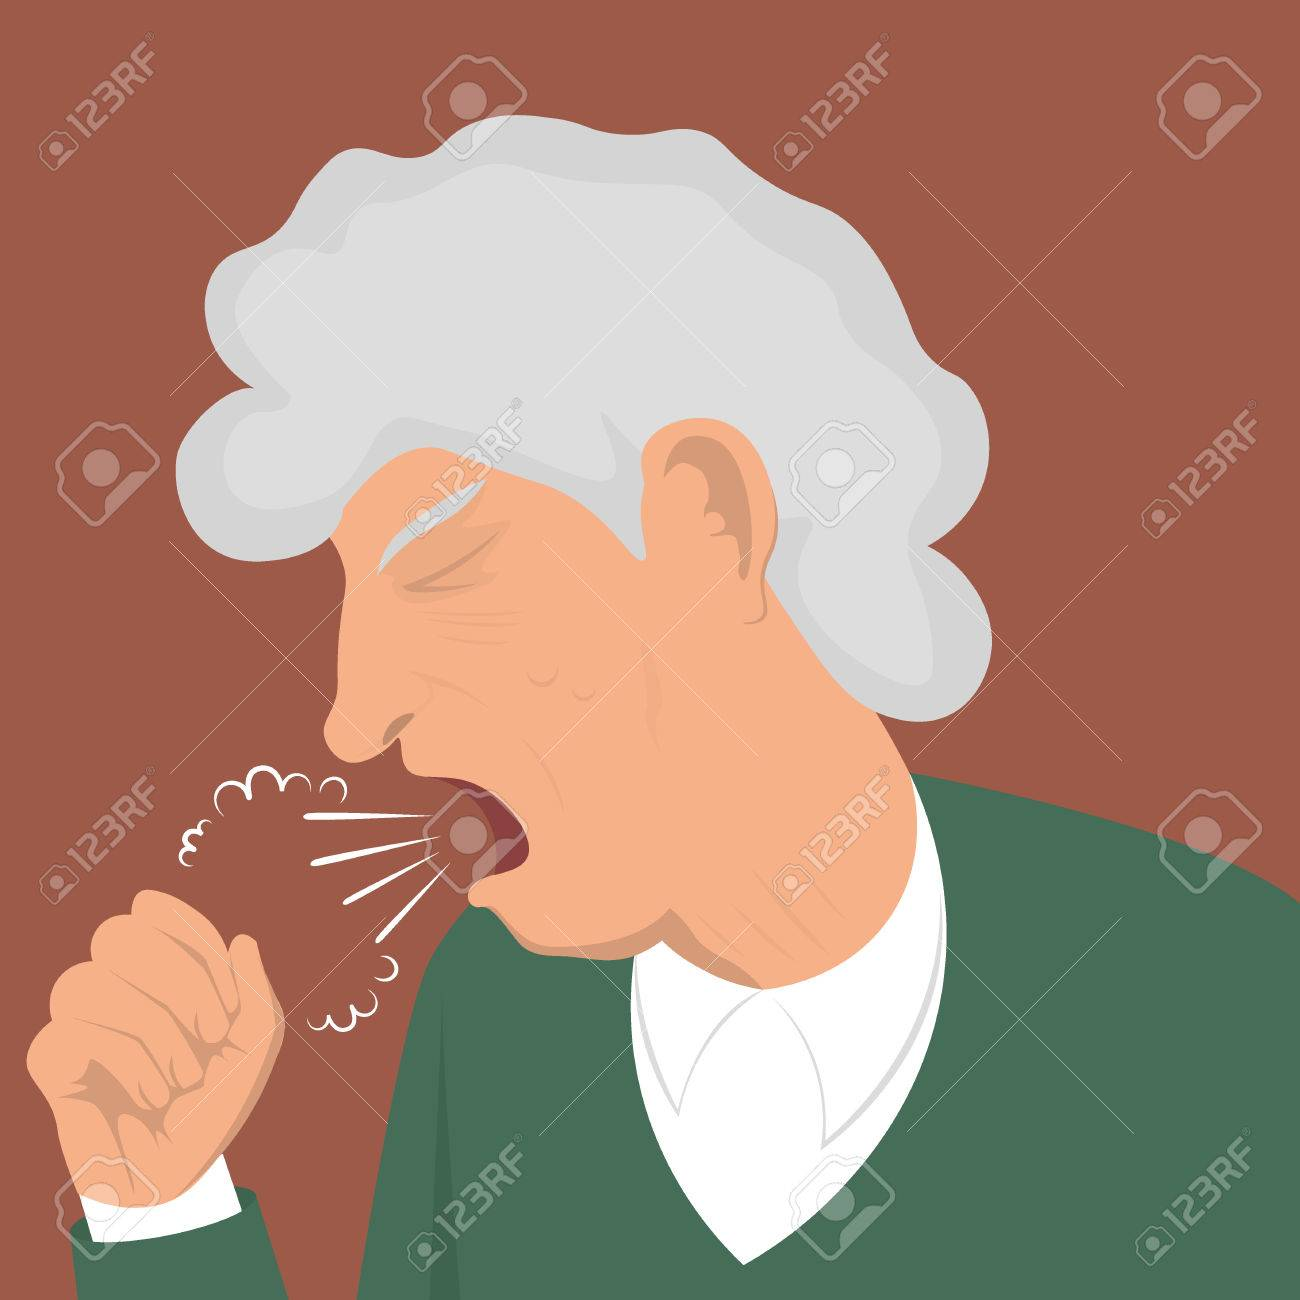 Illustration coughing granny - 46452372